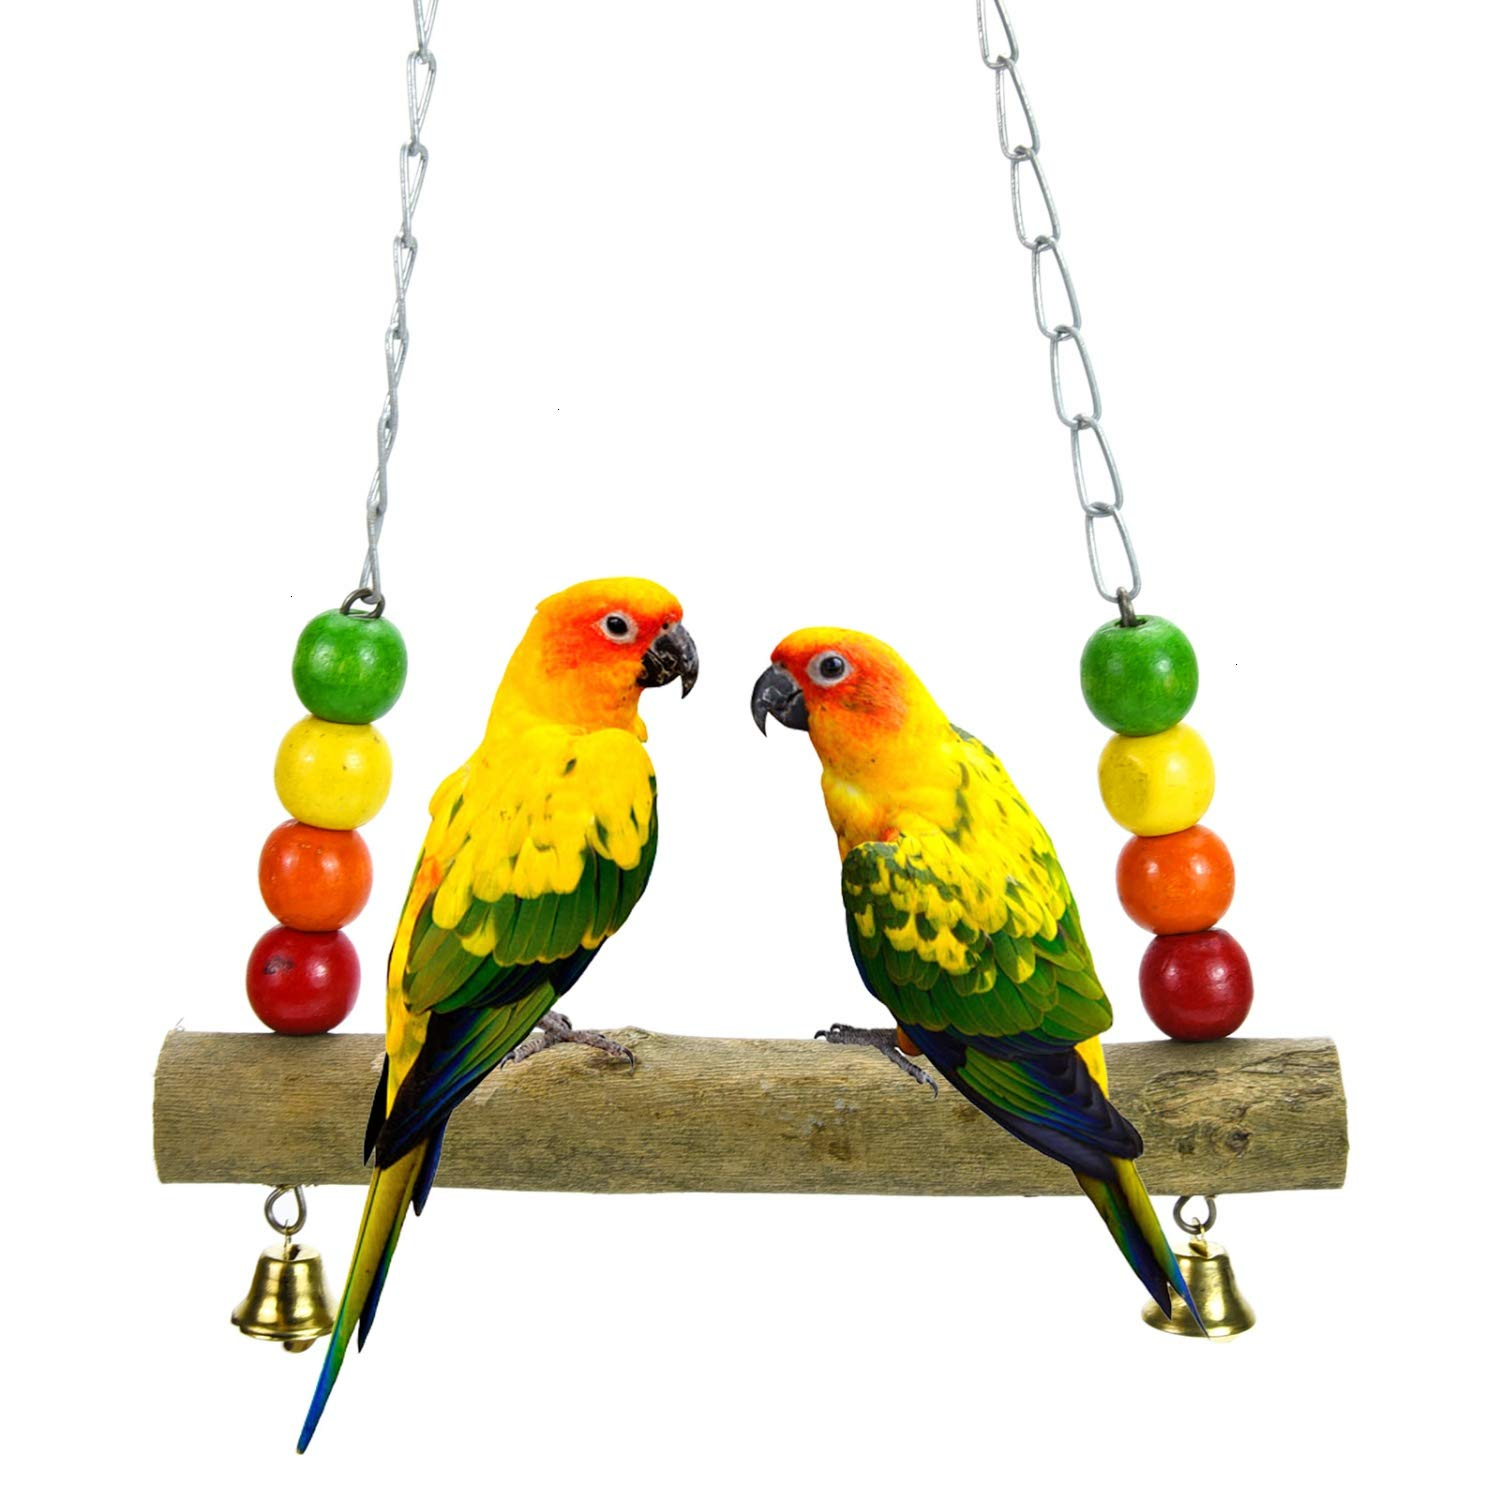 Pomeat Wooden Bird Swing Chicken Swing for Small and Medium-Sized Birds by Pomeat